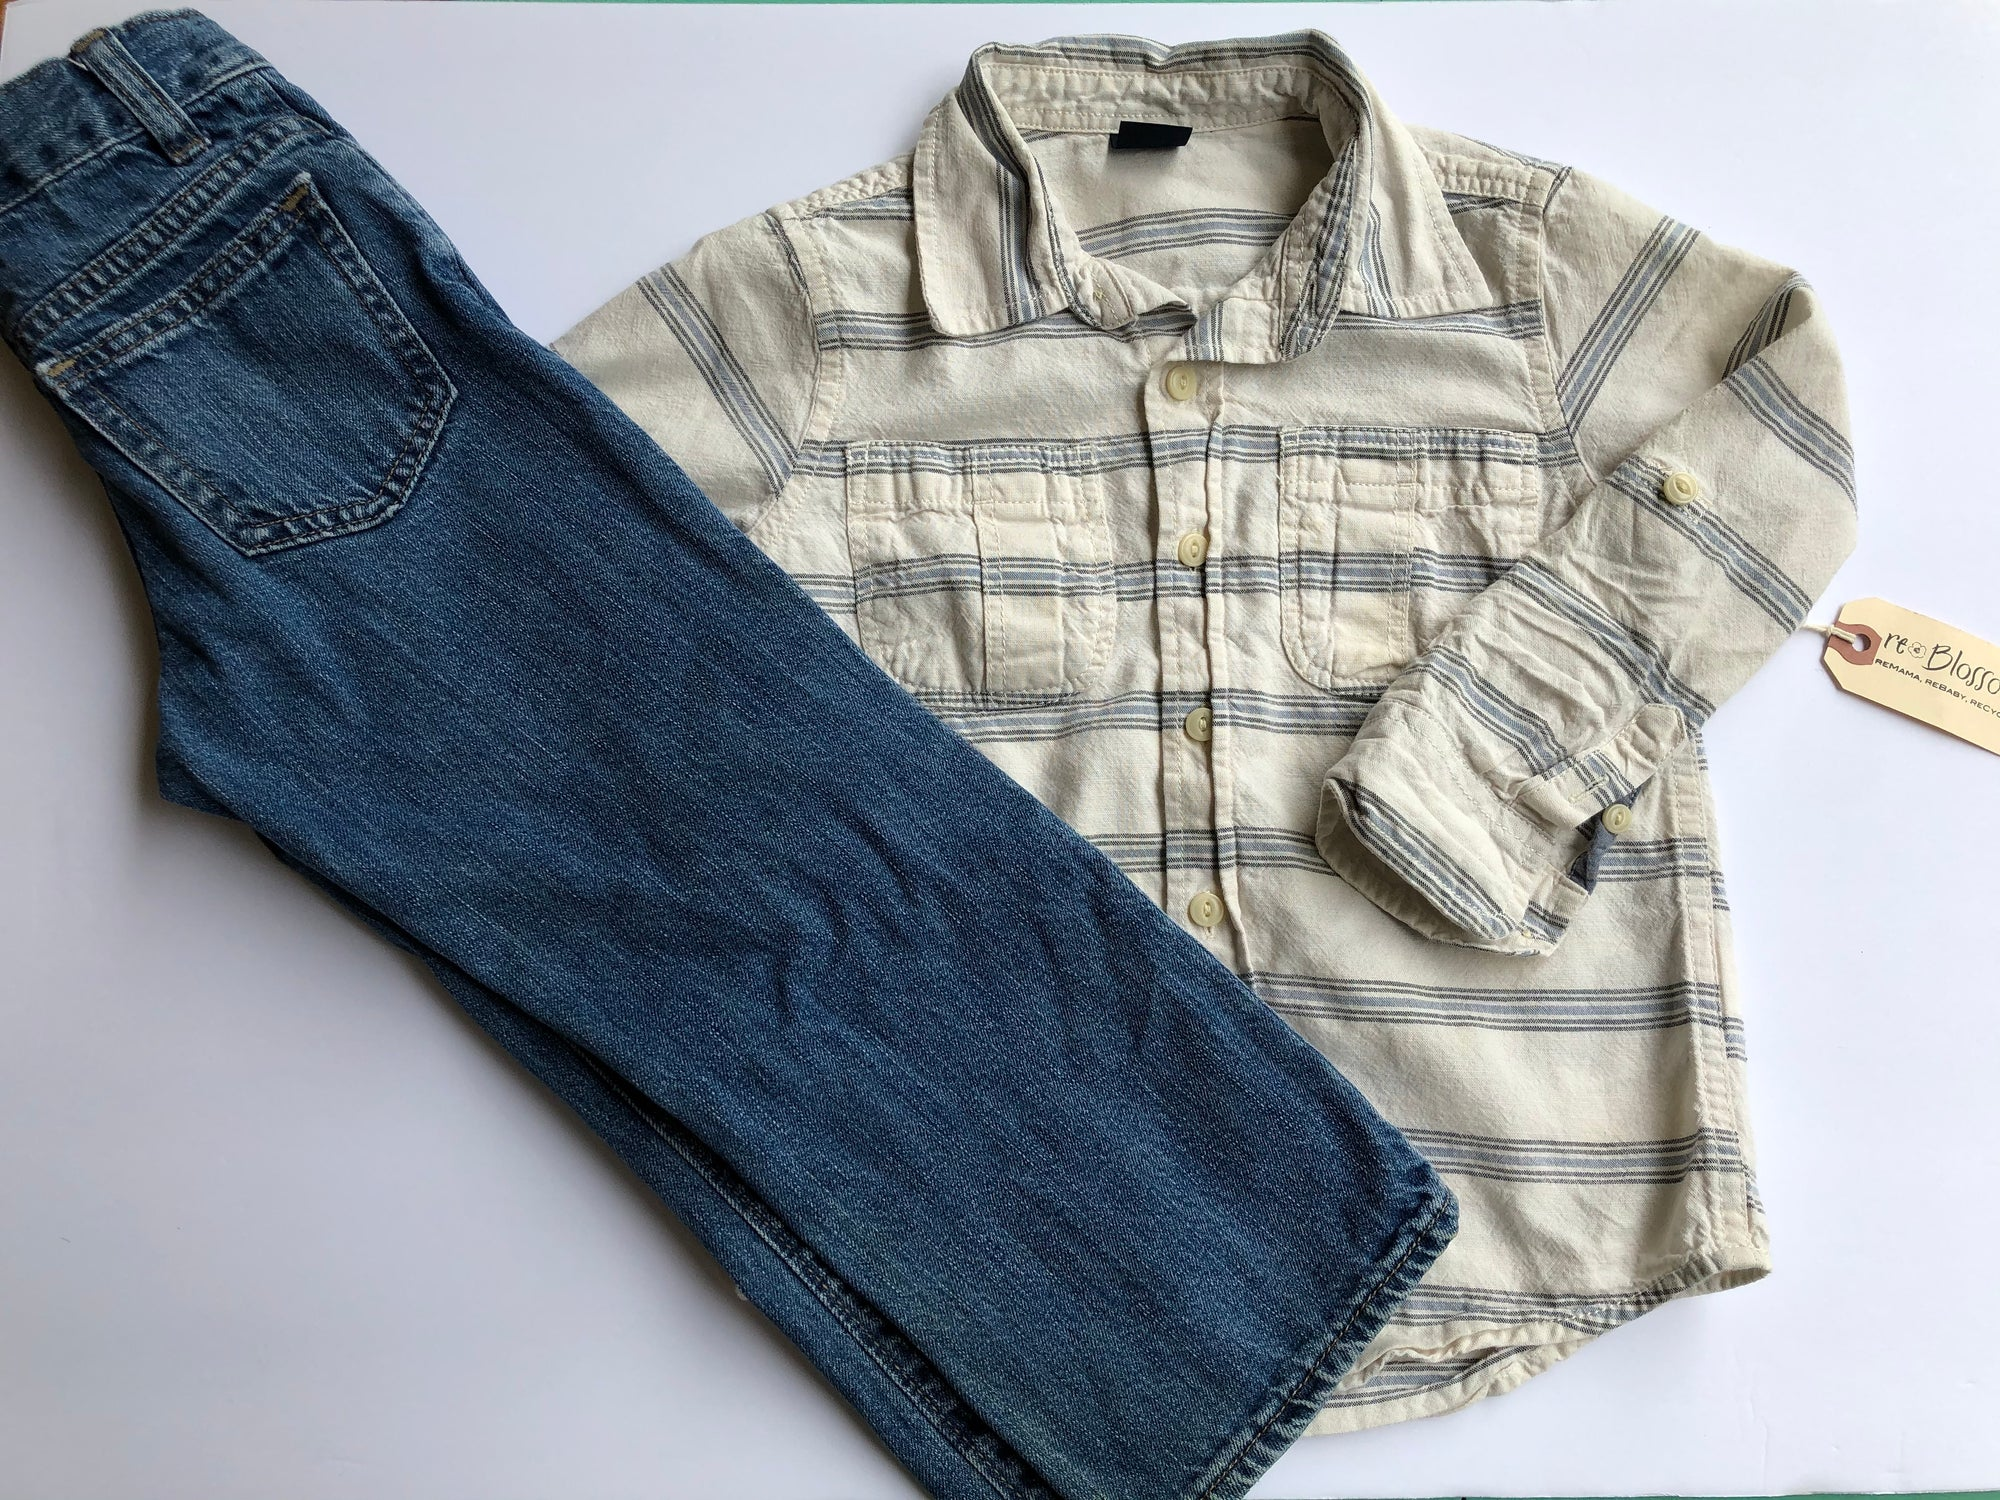 Resale 4T Gap Long-sleeve Shirt & 4T Old Navy Jeans